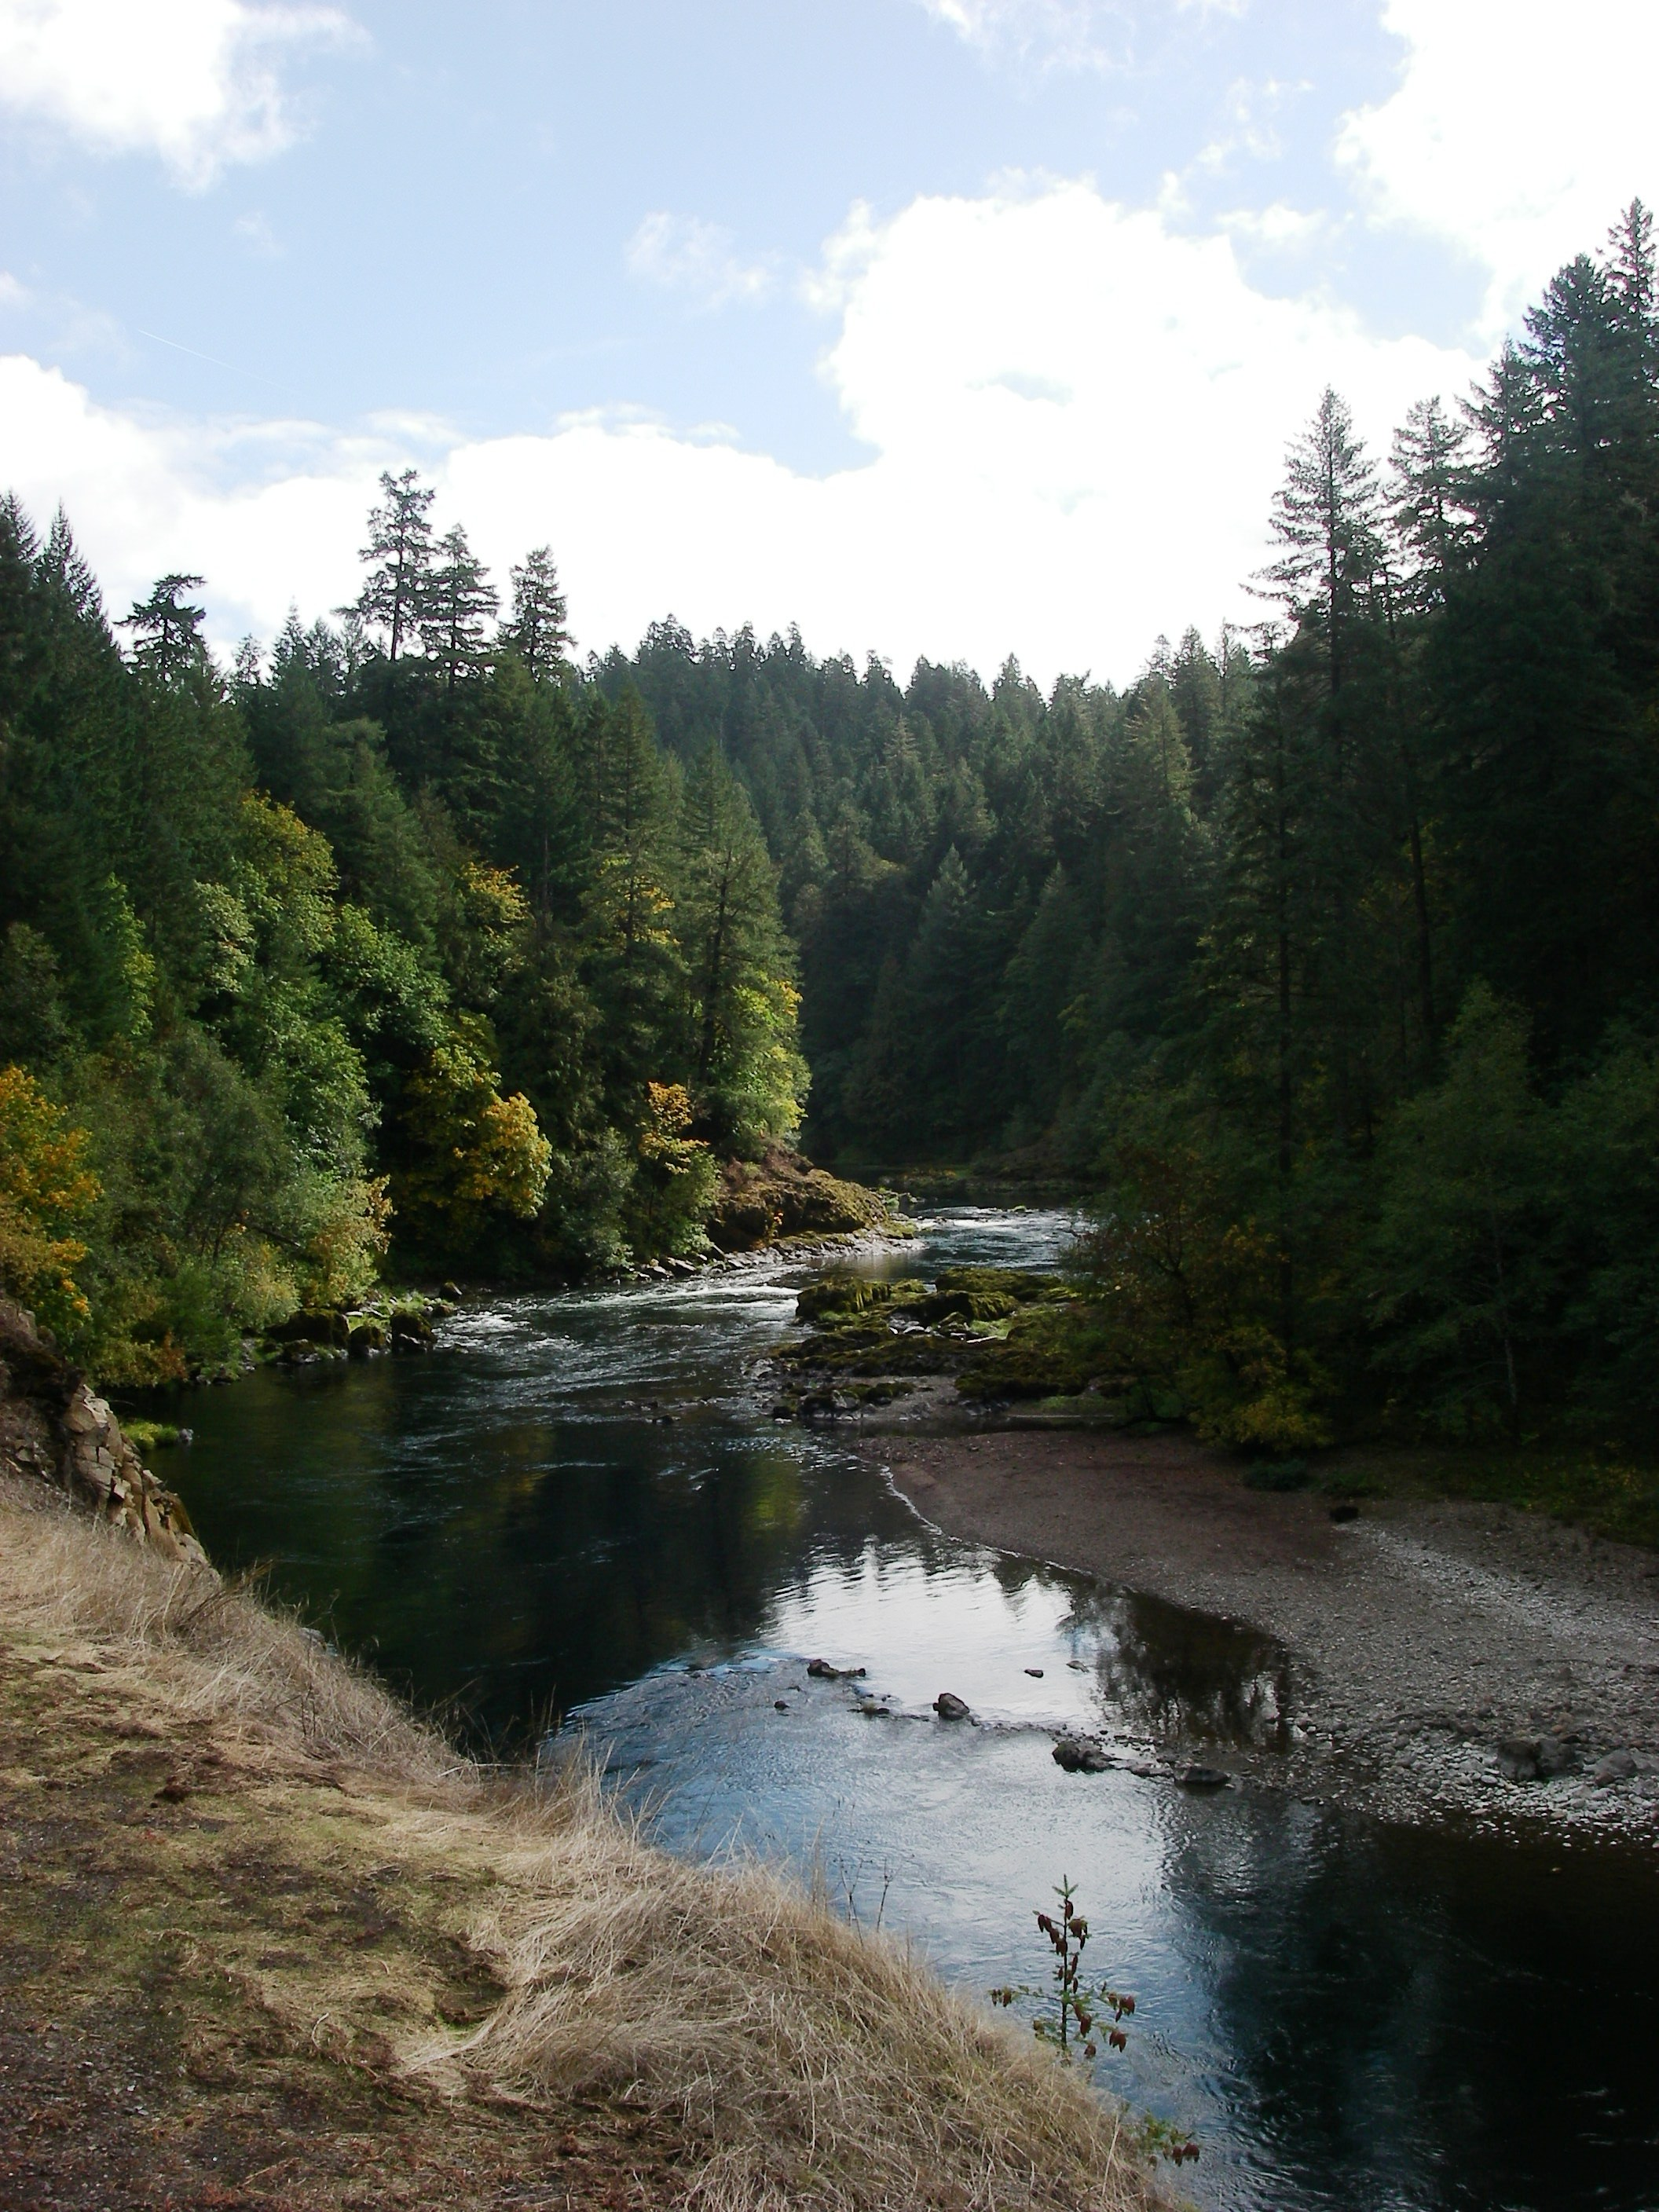 The beautiful North Umpqua